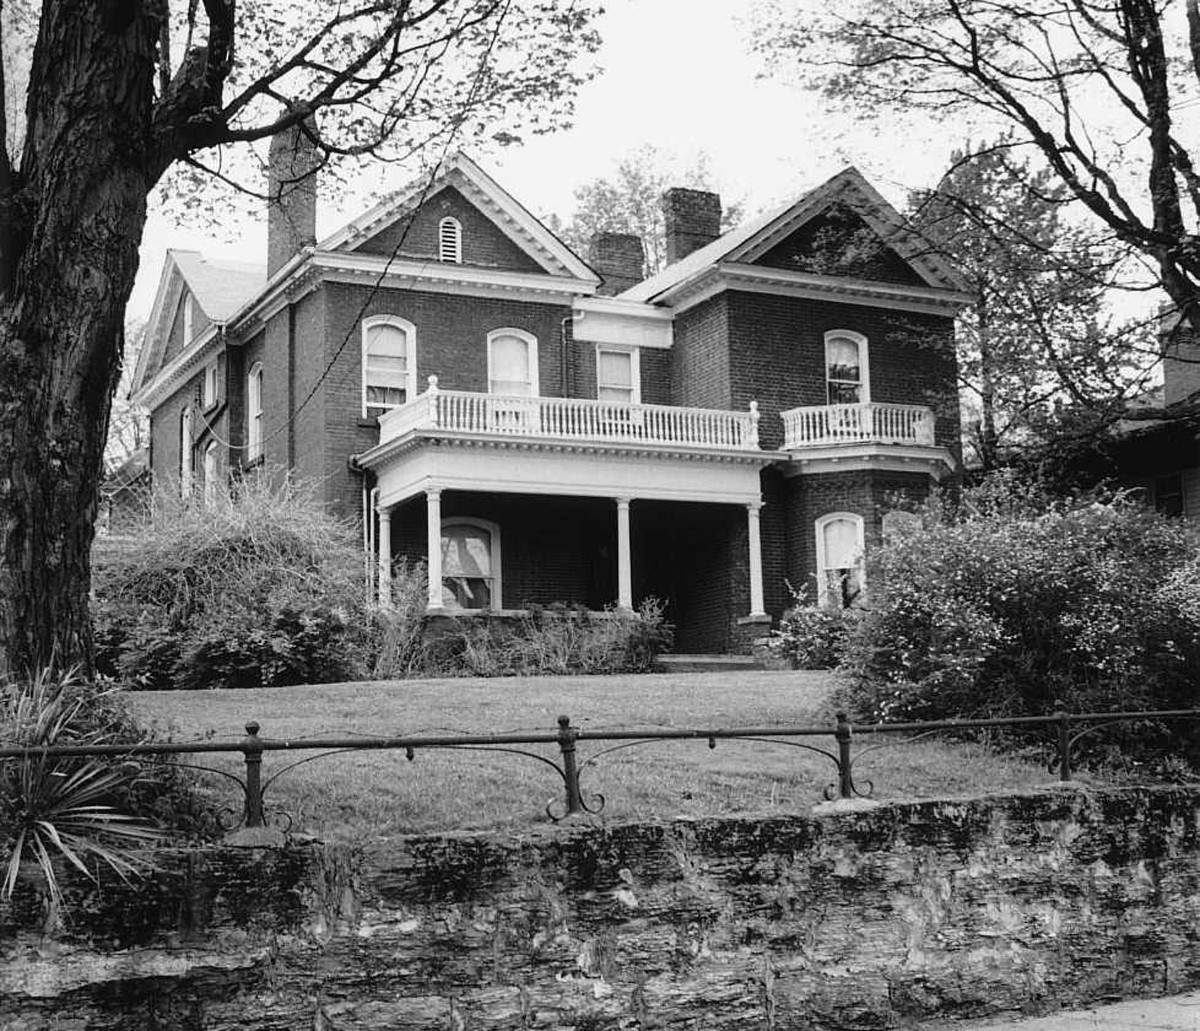 King-Lancaster-McCoy-Mitchell House